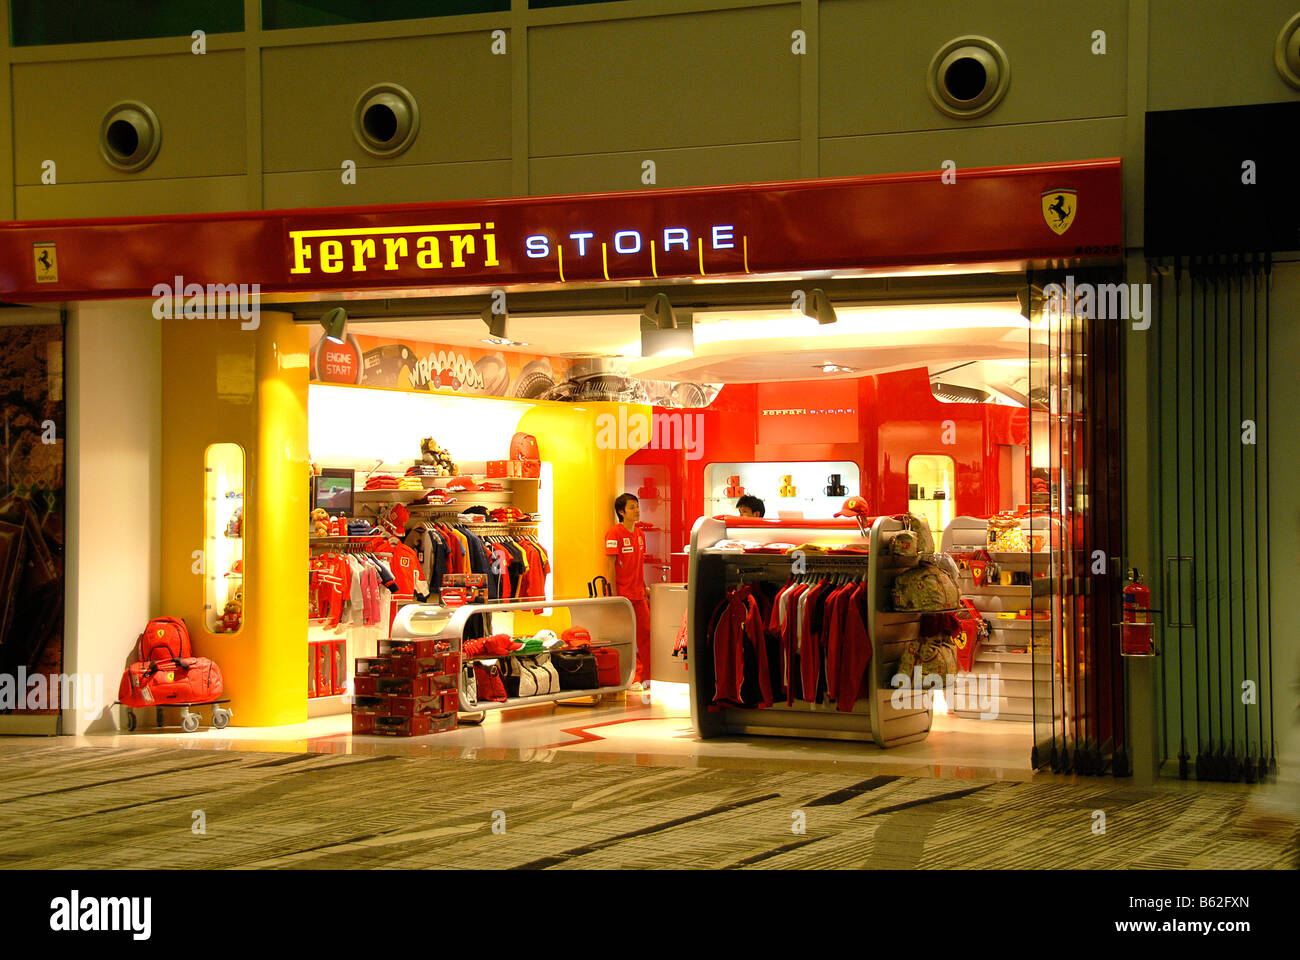 Ferrari Shop High Resolution Stock Photography And Images Alamy